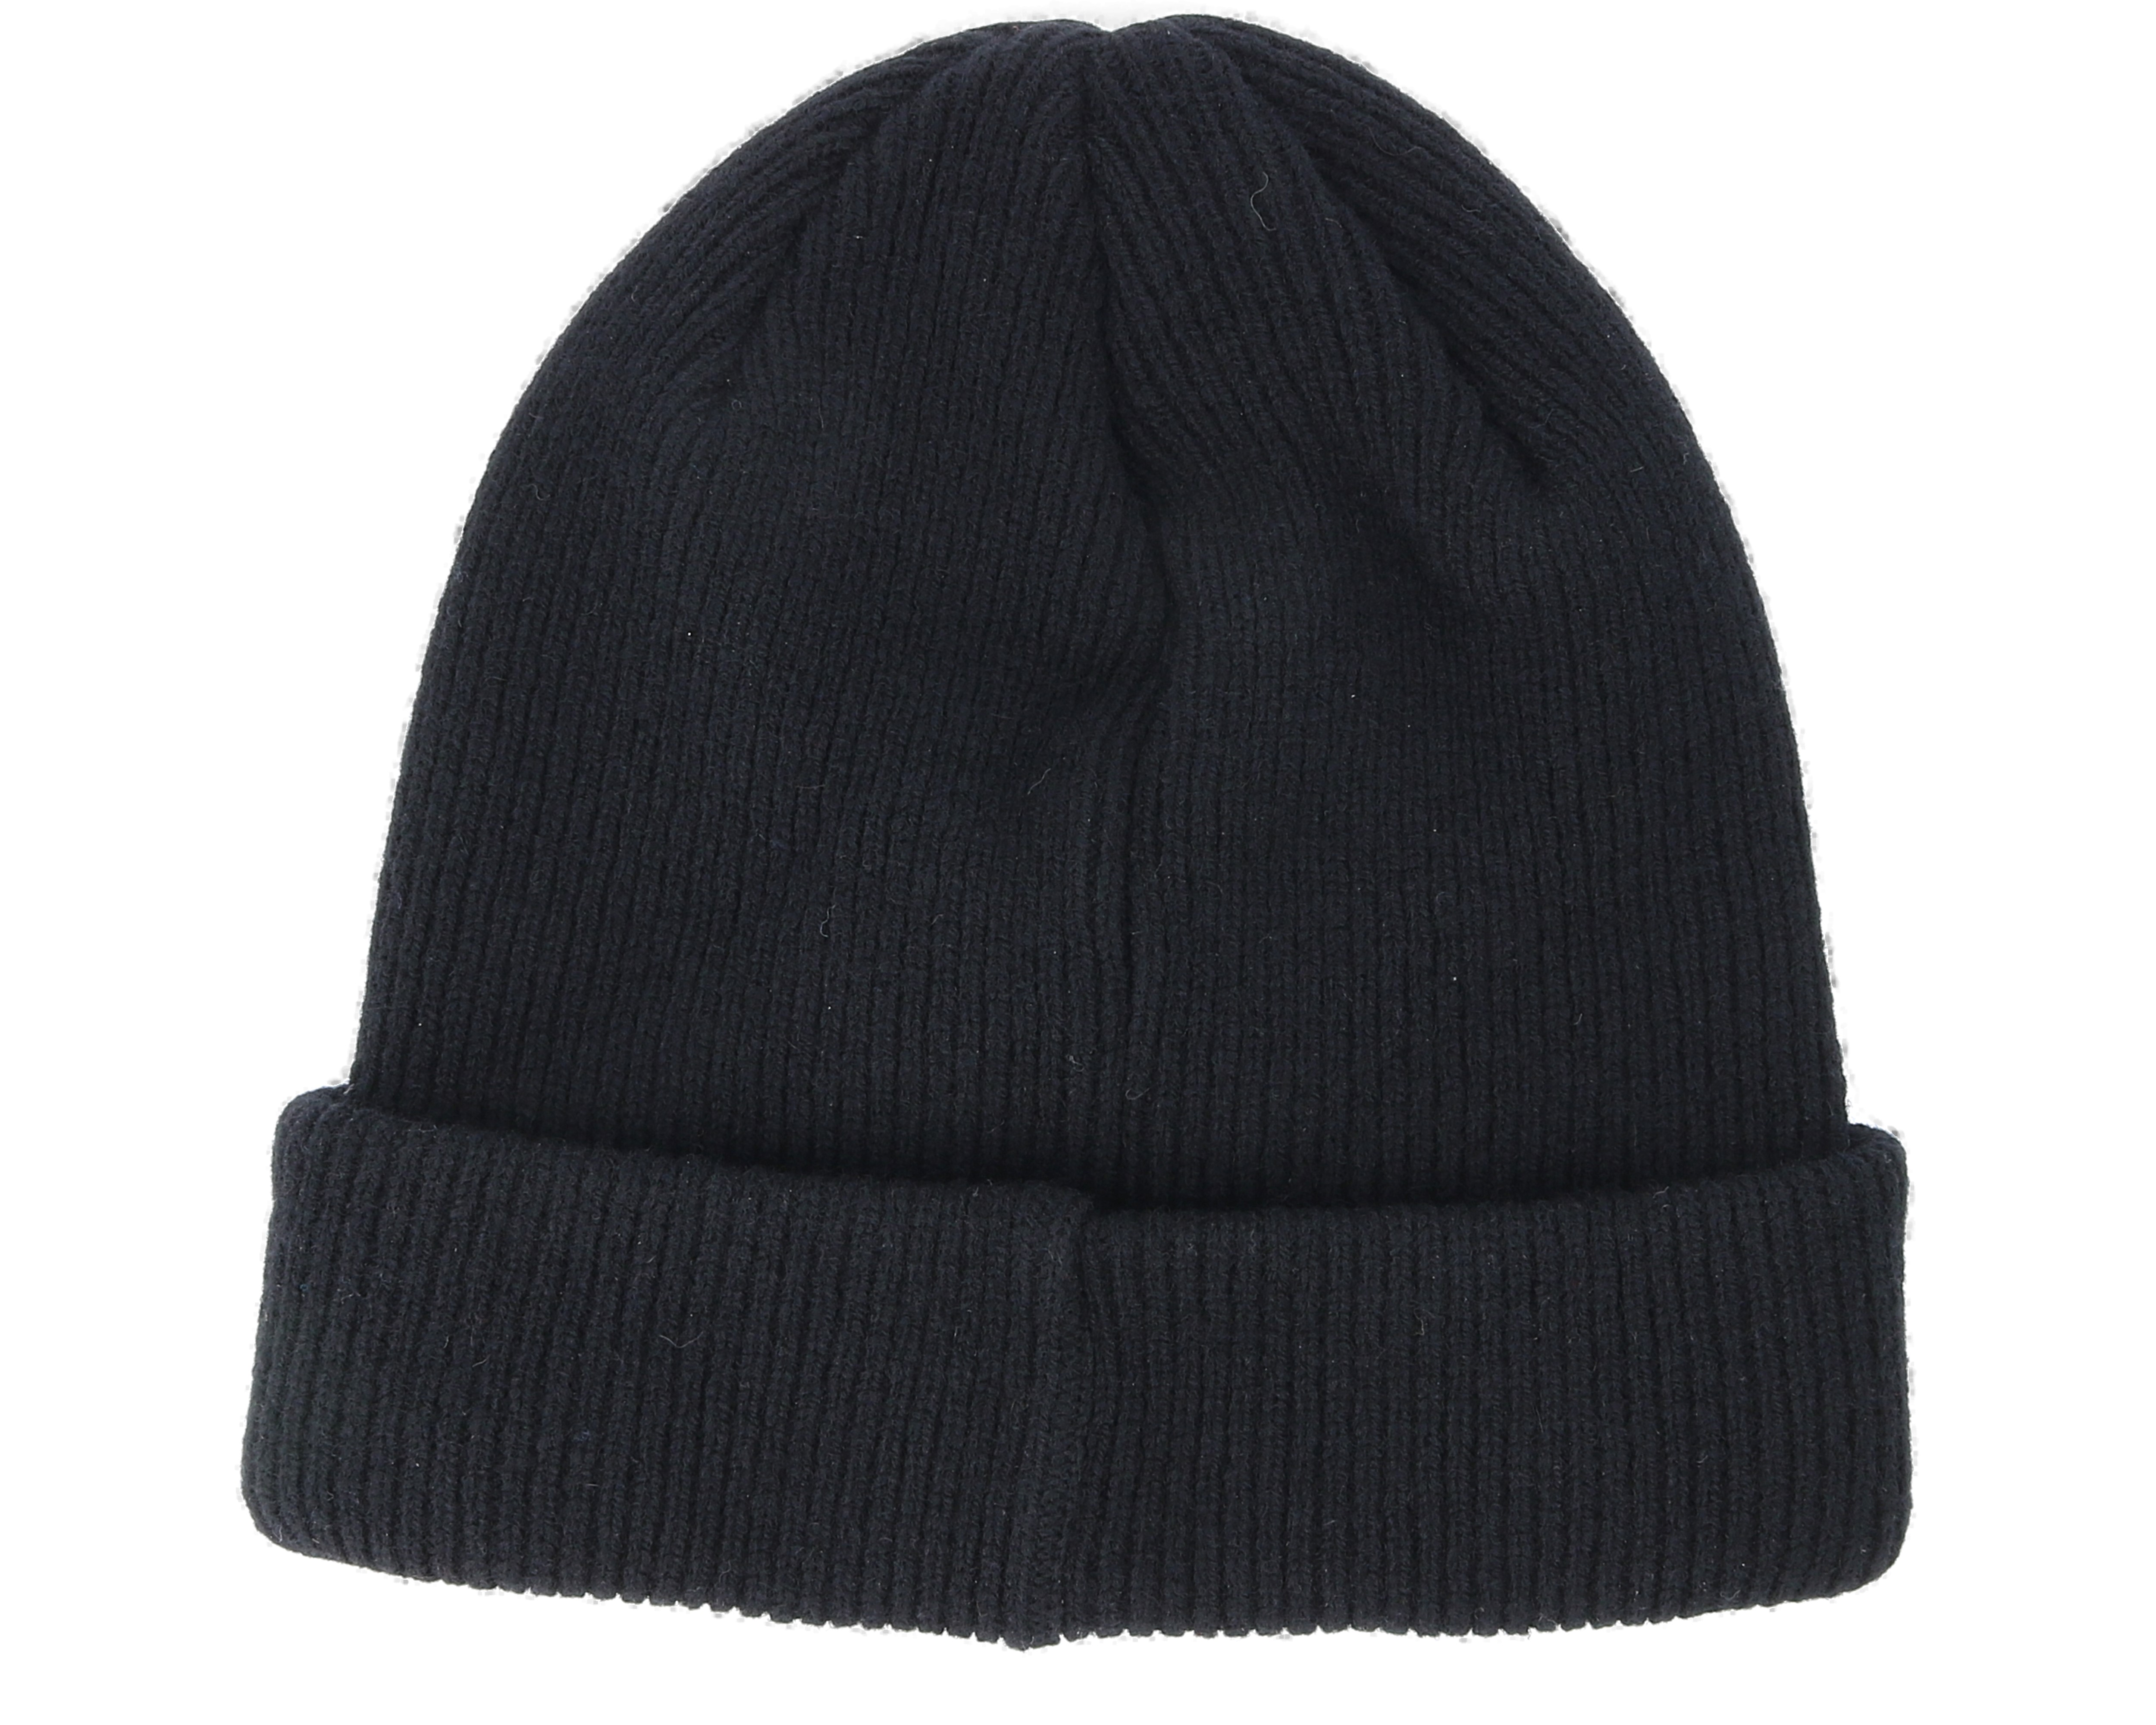 Find great deals on eBay for black knit beanie. Shop with confidence.